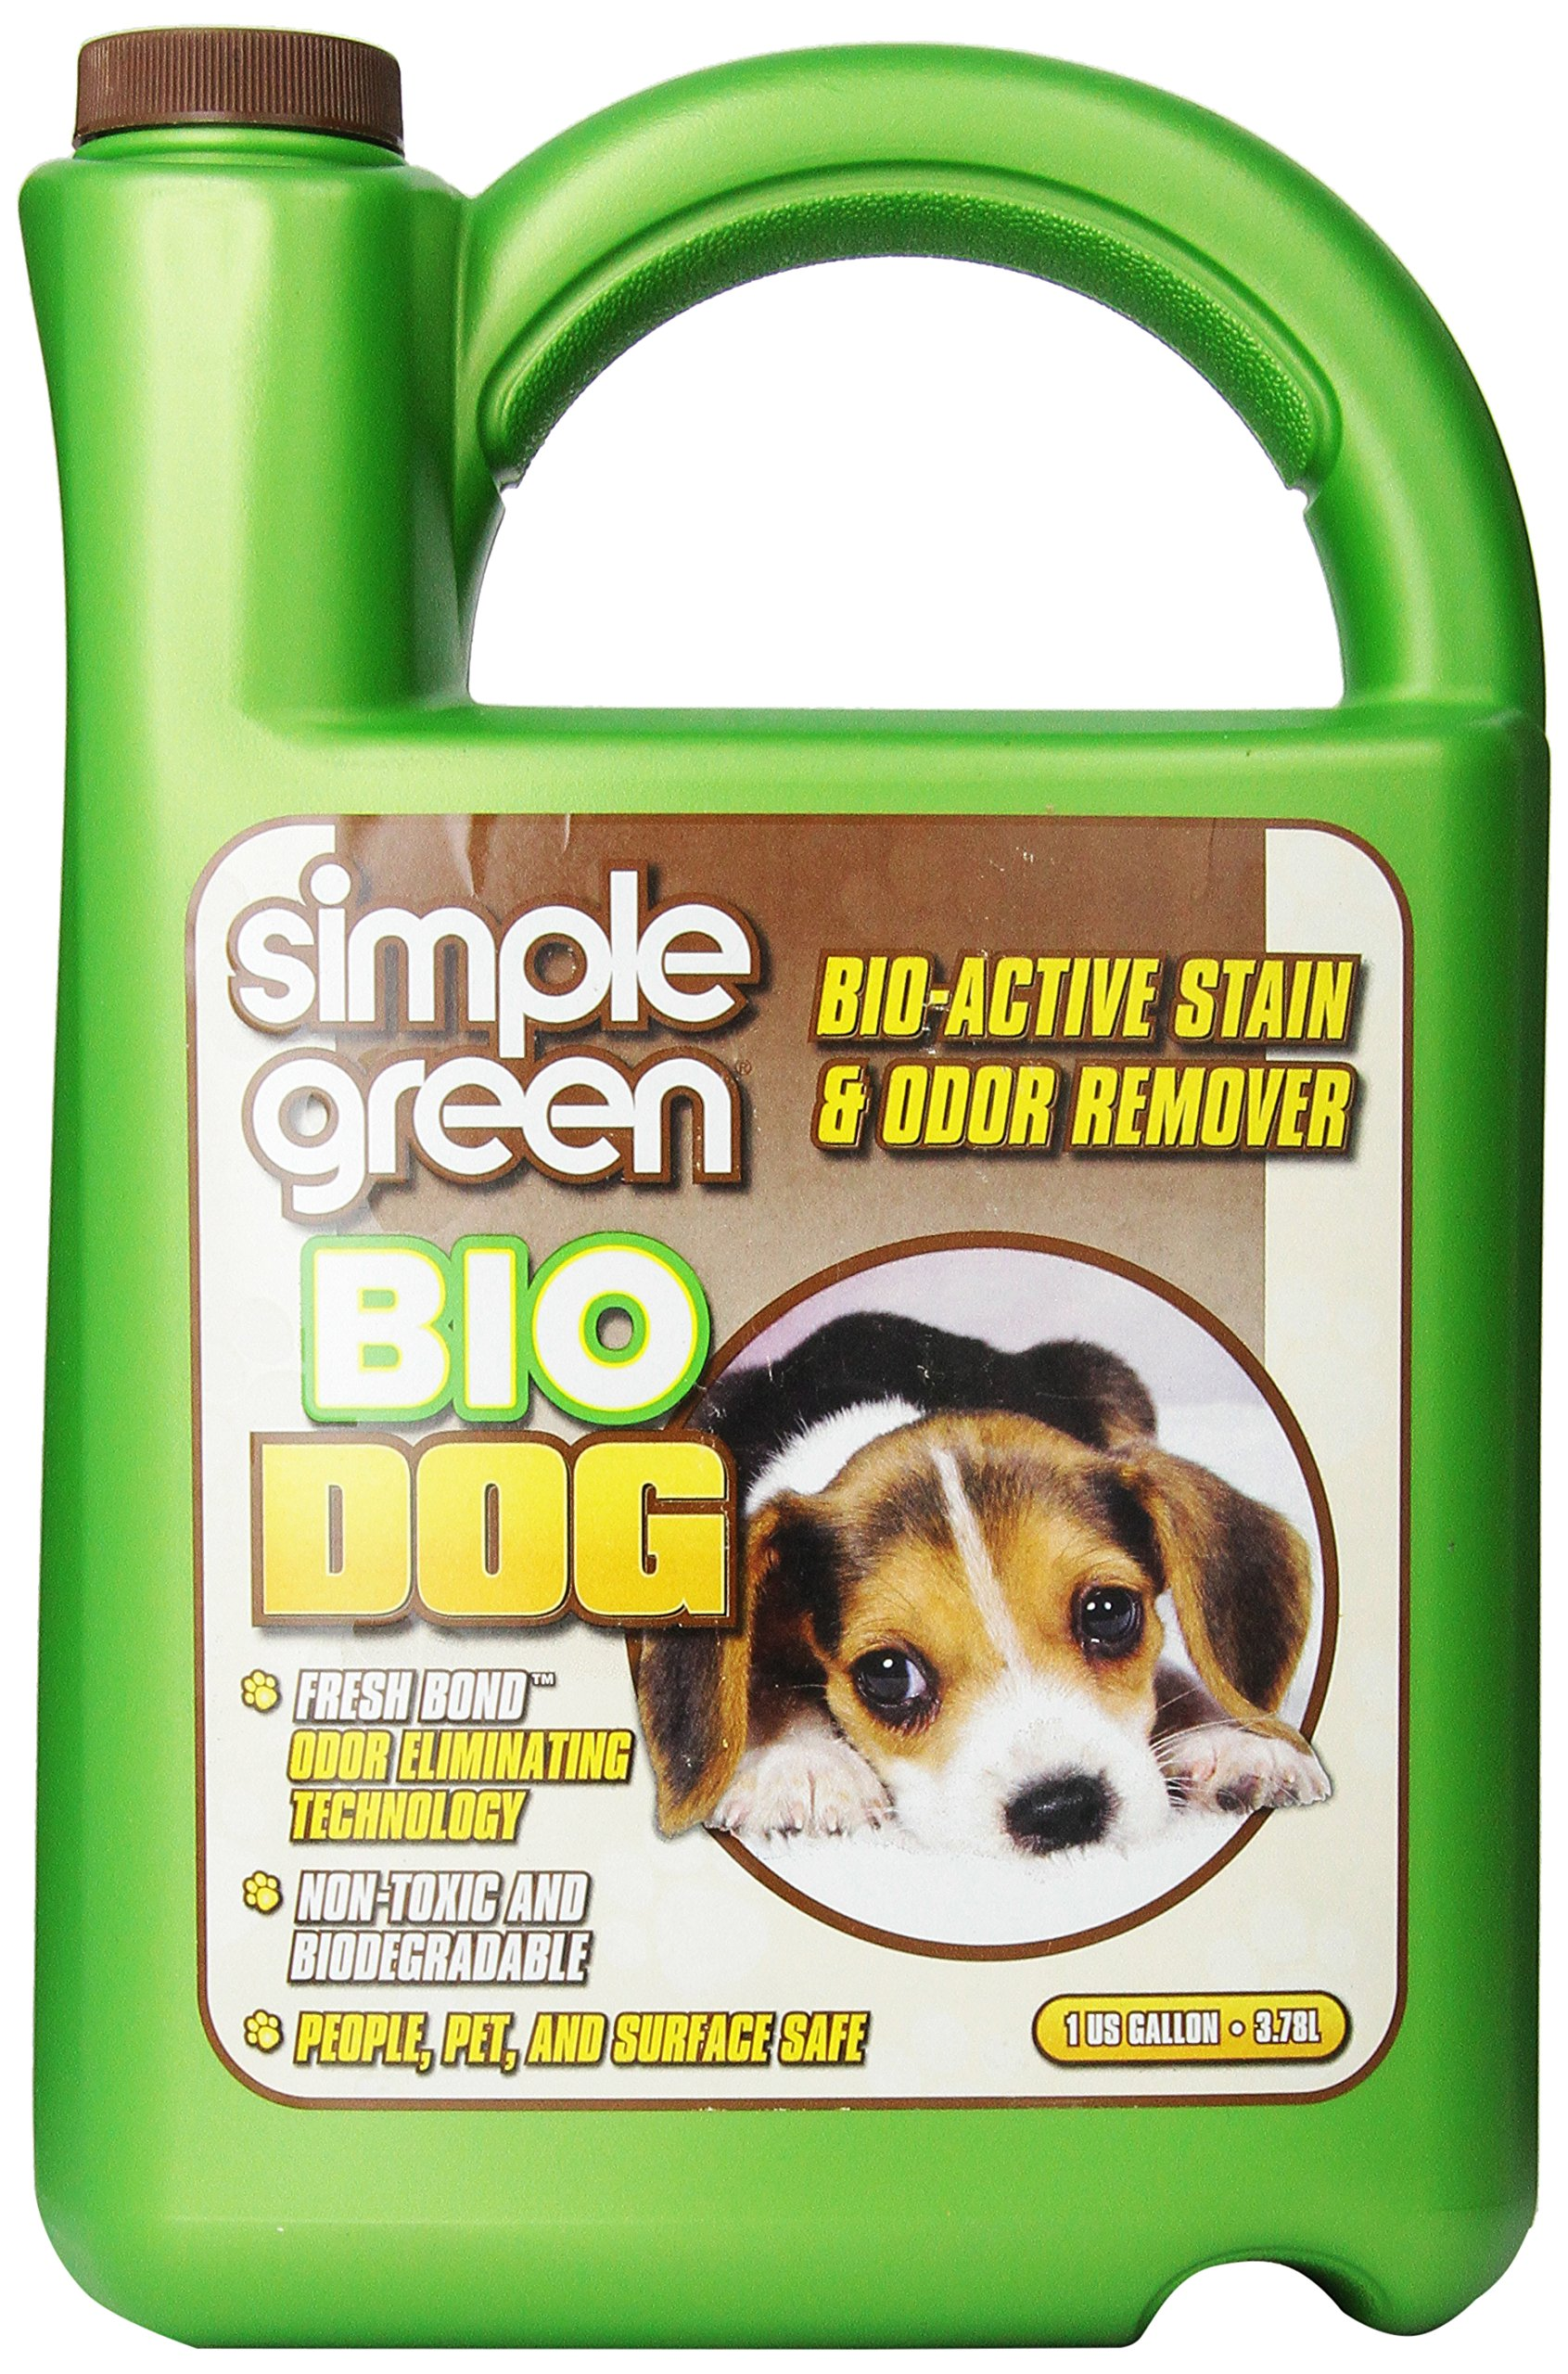 Simple Green Bio Active Stain and Odor Remover 1 Gallon Refill For Pet and Carpet- Non-Toxic, Pet and People Safe